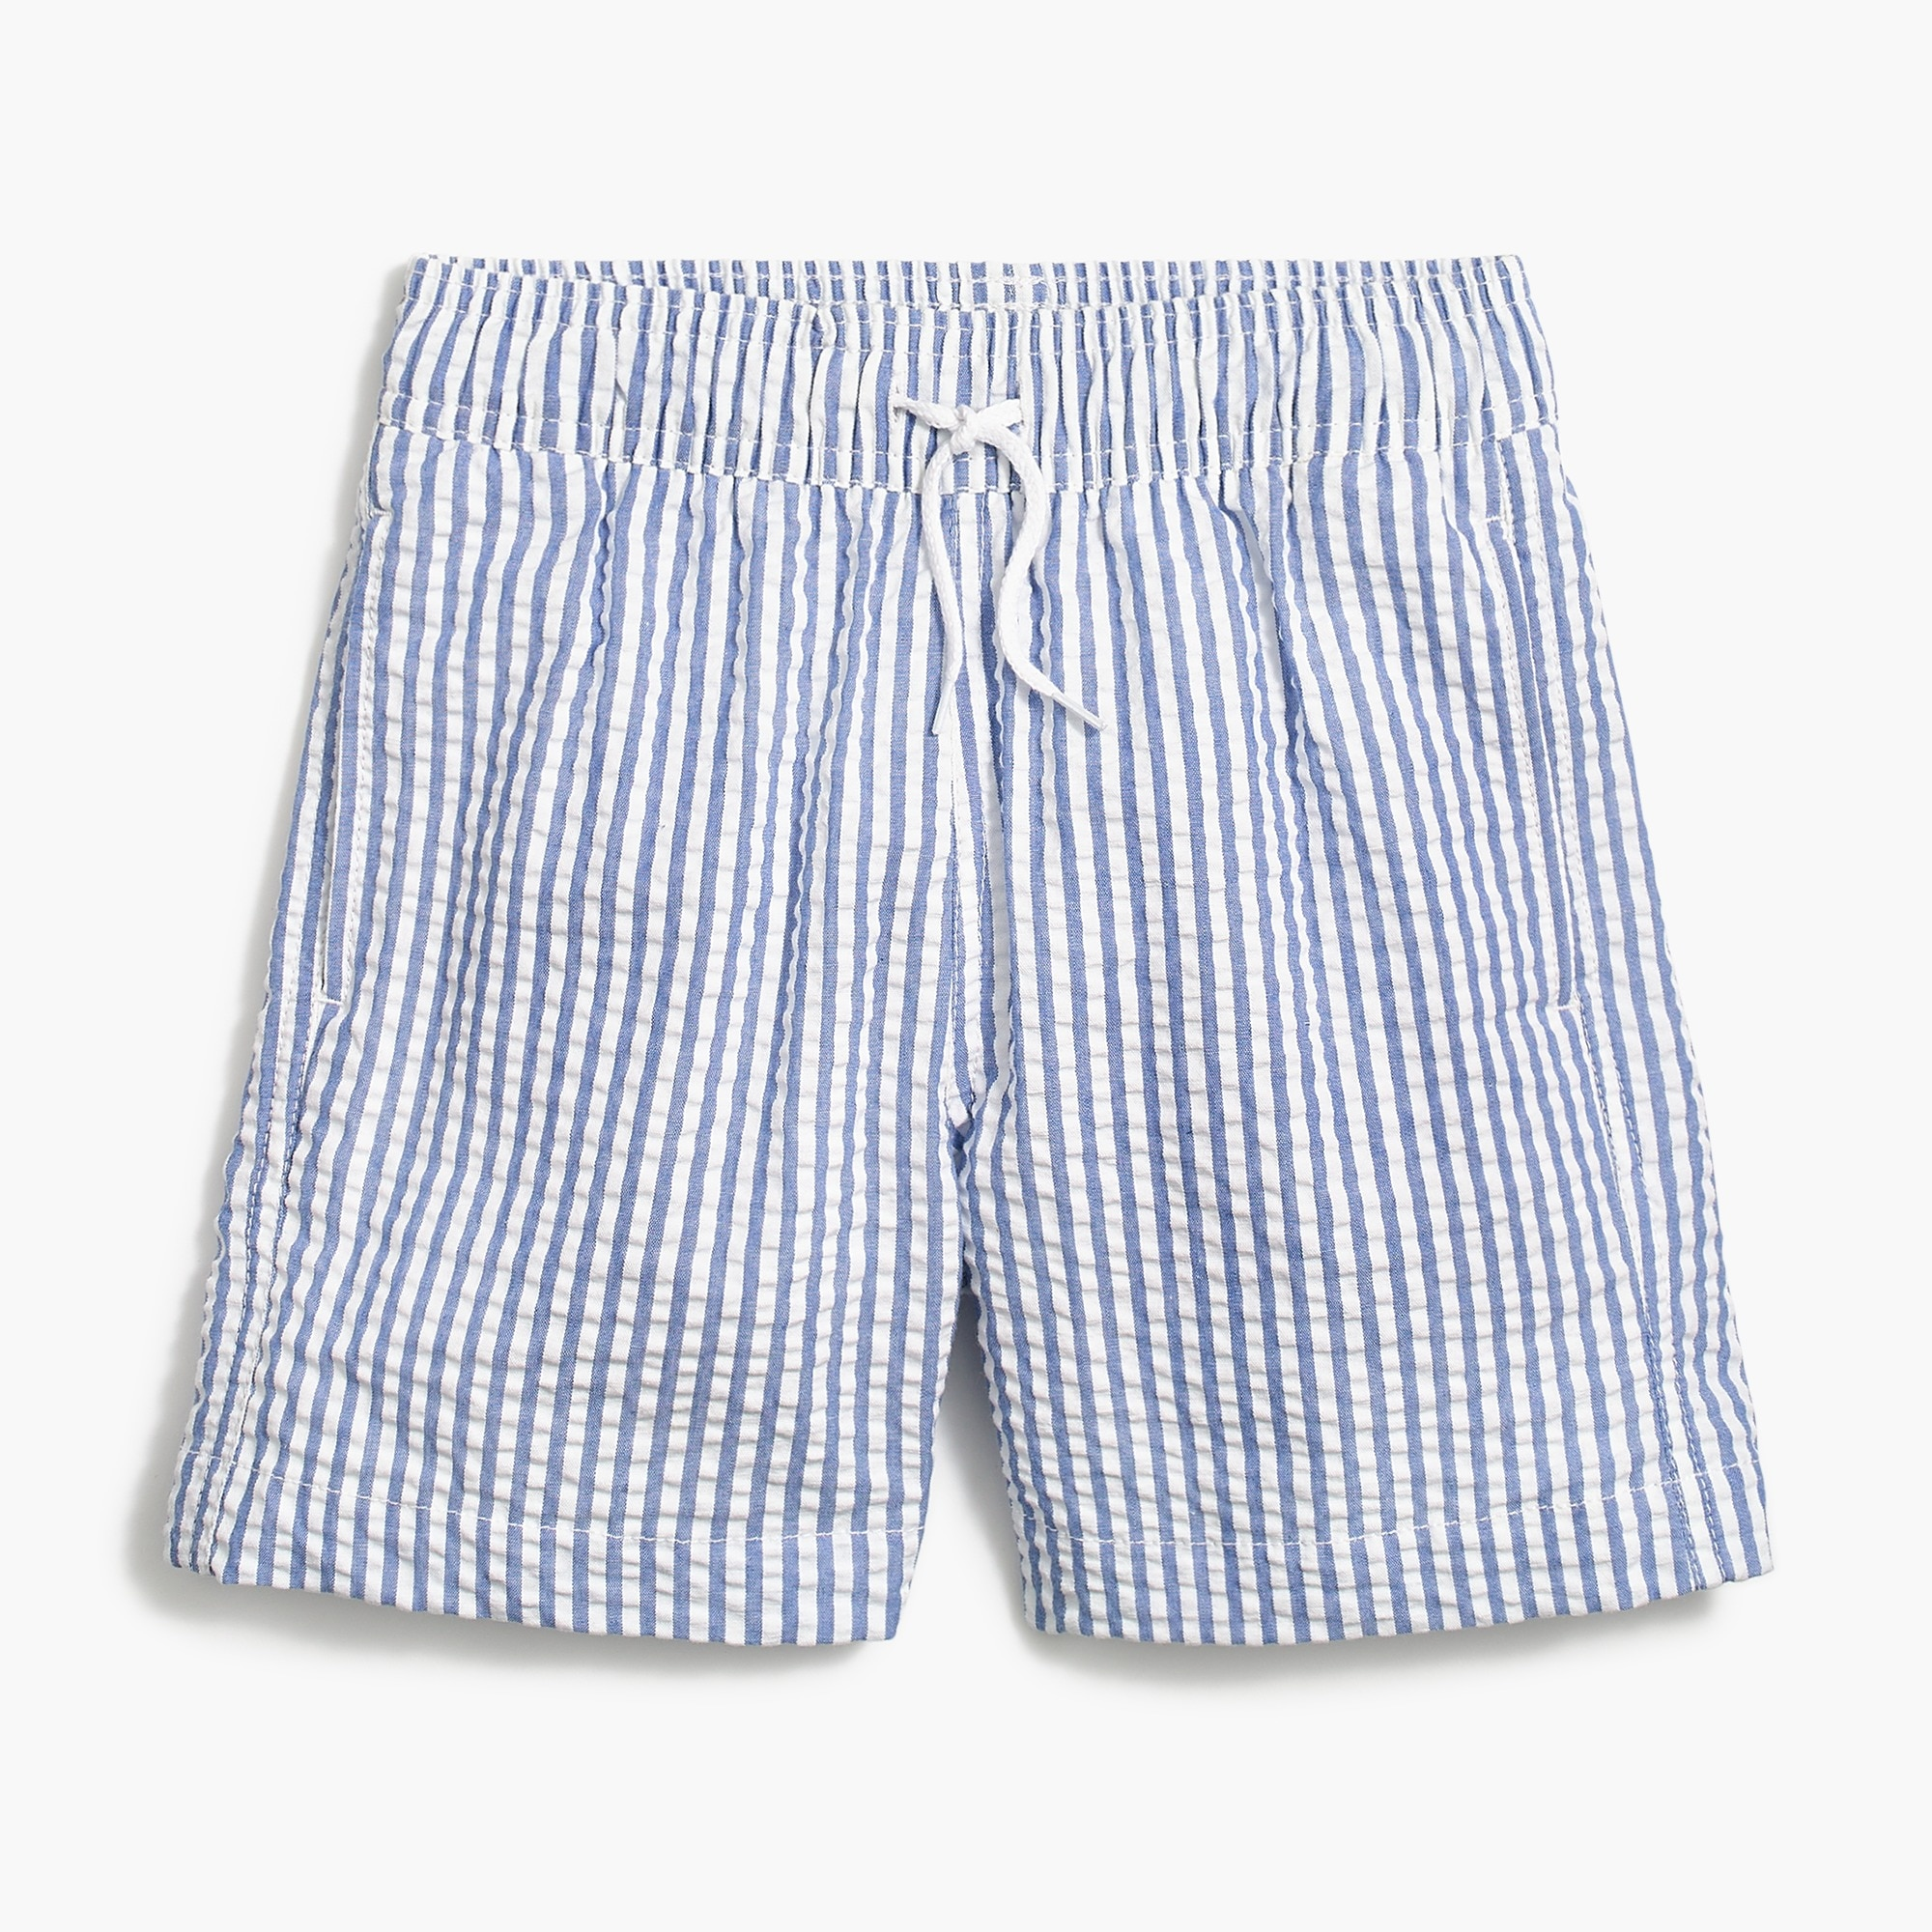 Image 1 for Boys' seersucker swim trunk